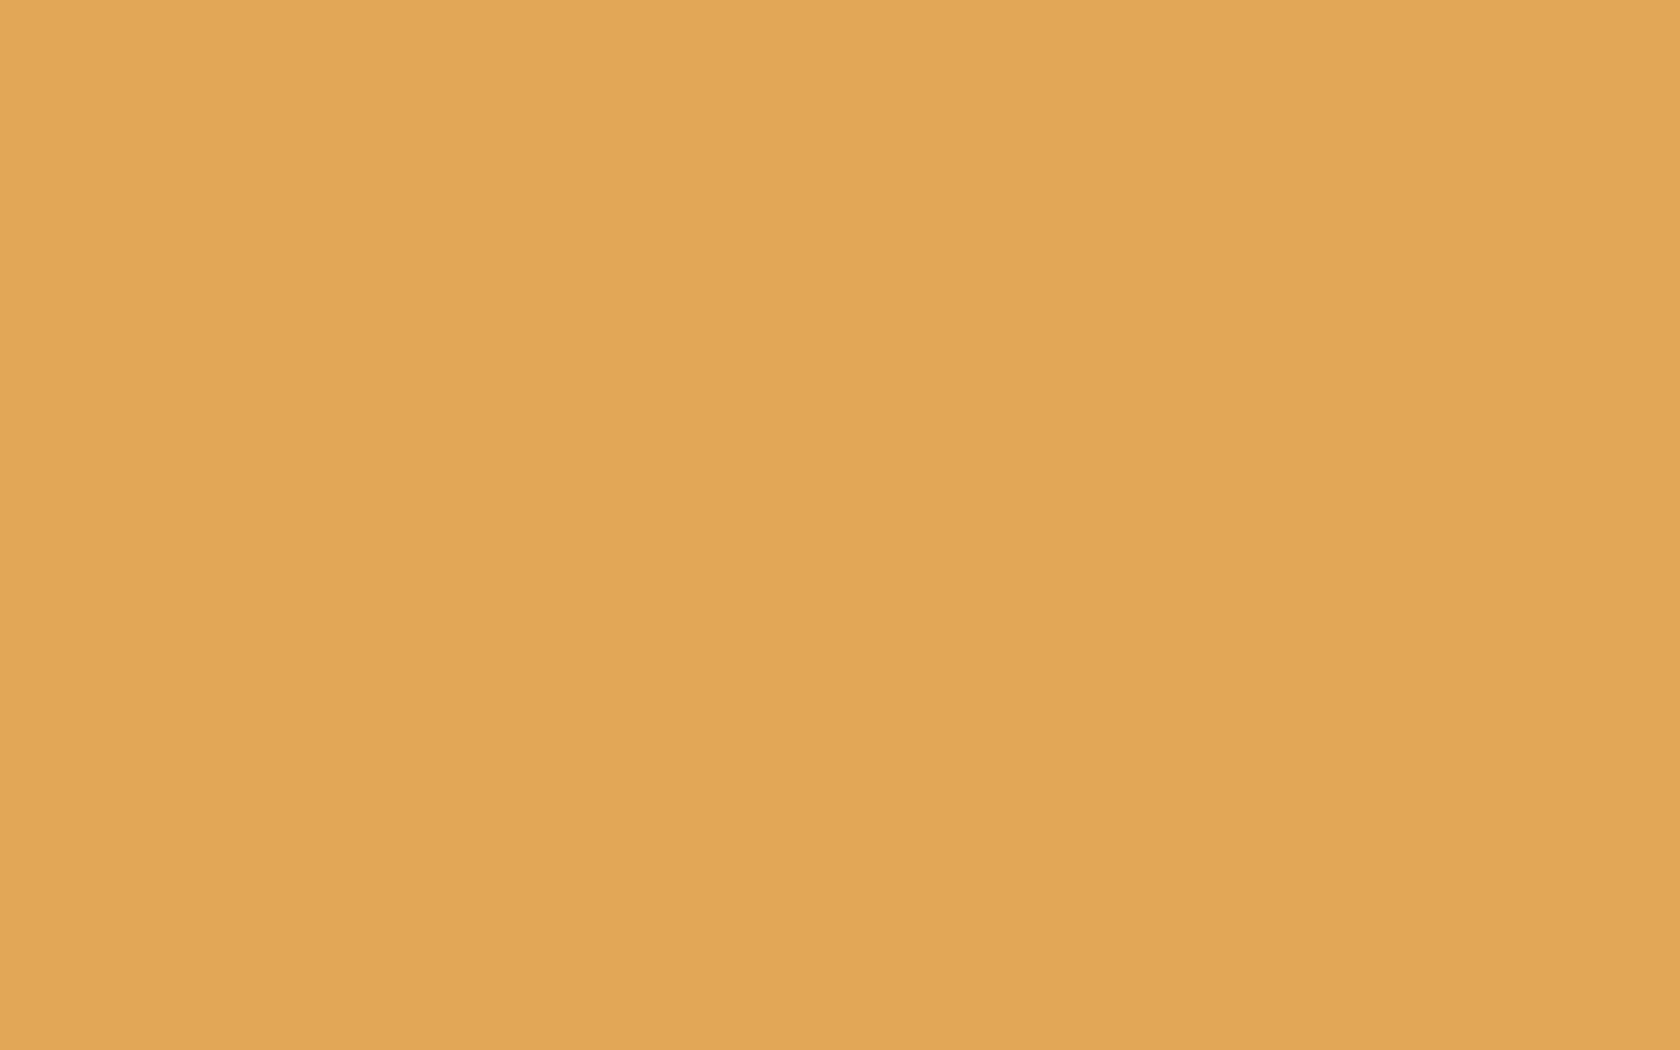 1680x1050 Indian Yellow Solid Color Background